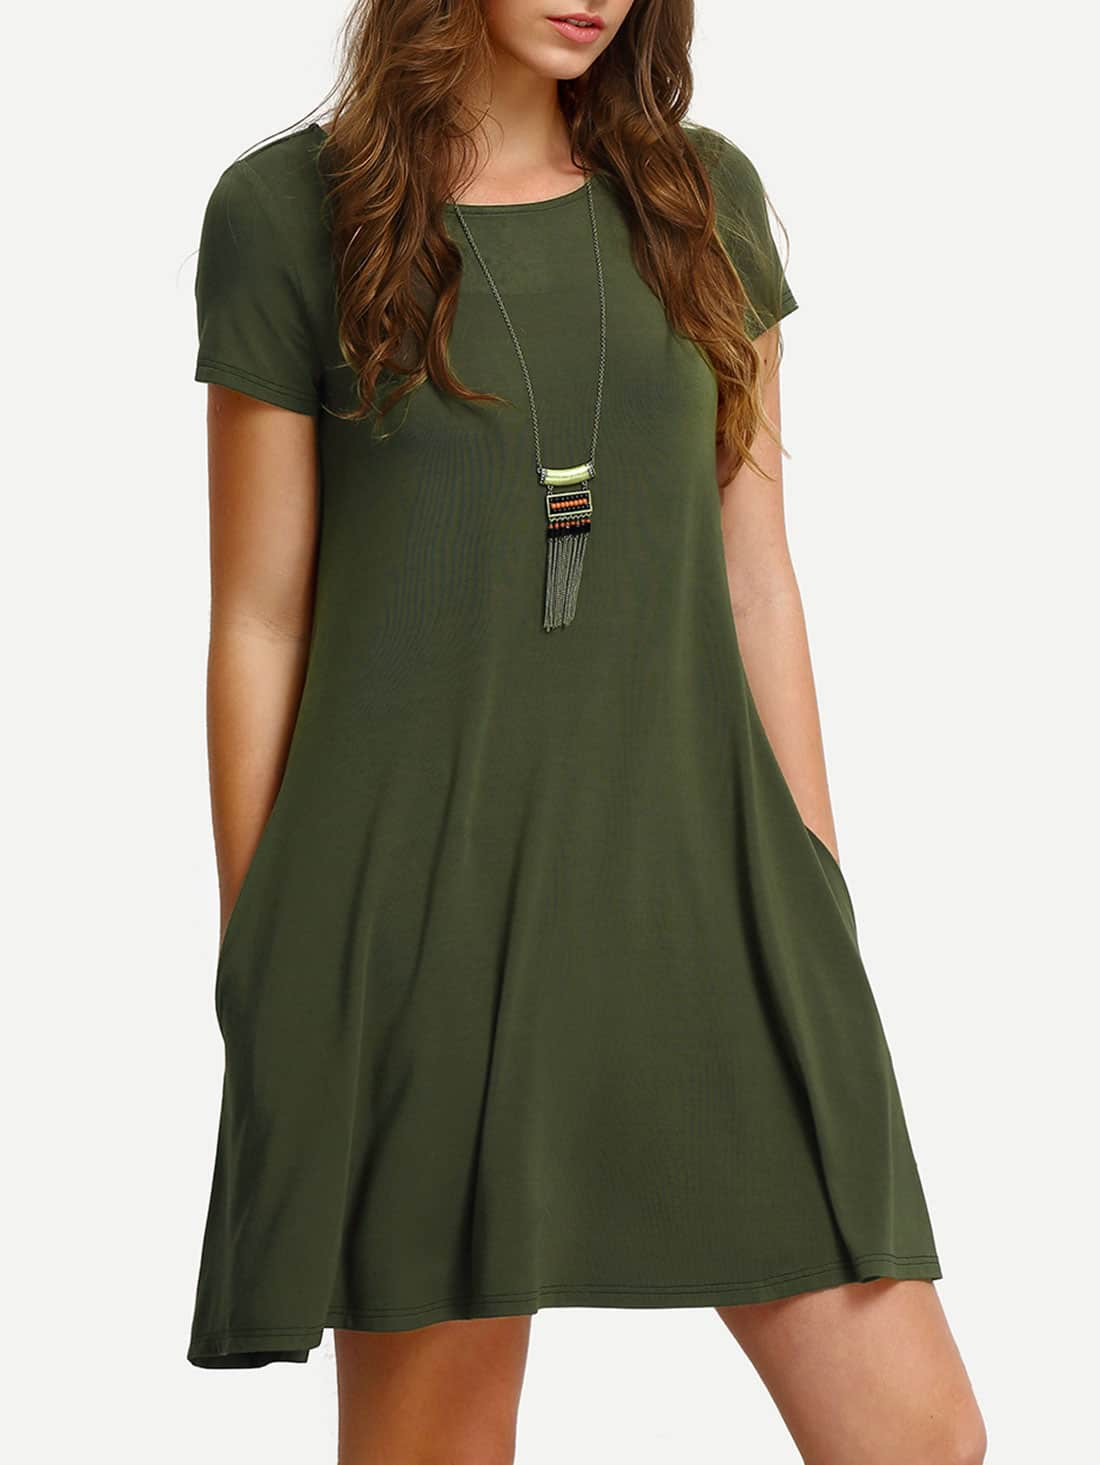 Short Sleeve Casual Shift Dress flounce short sleeve shift sleep dress